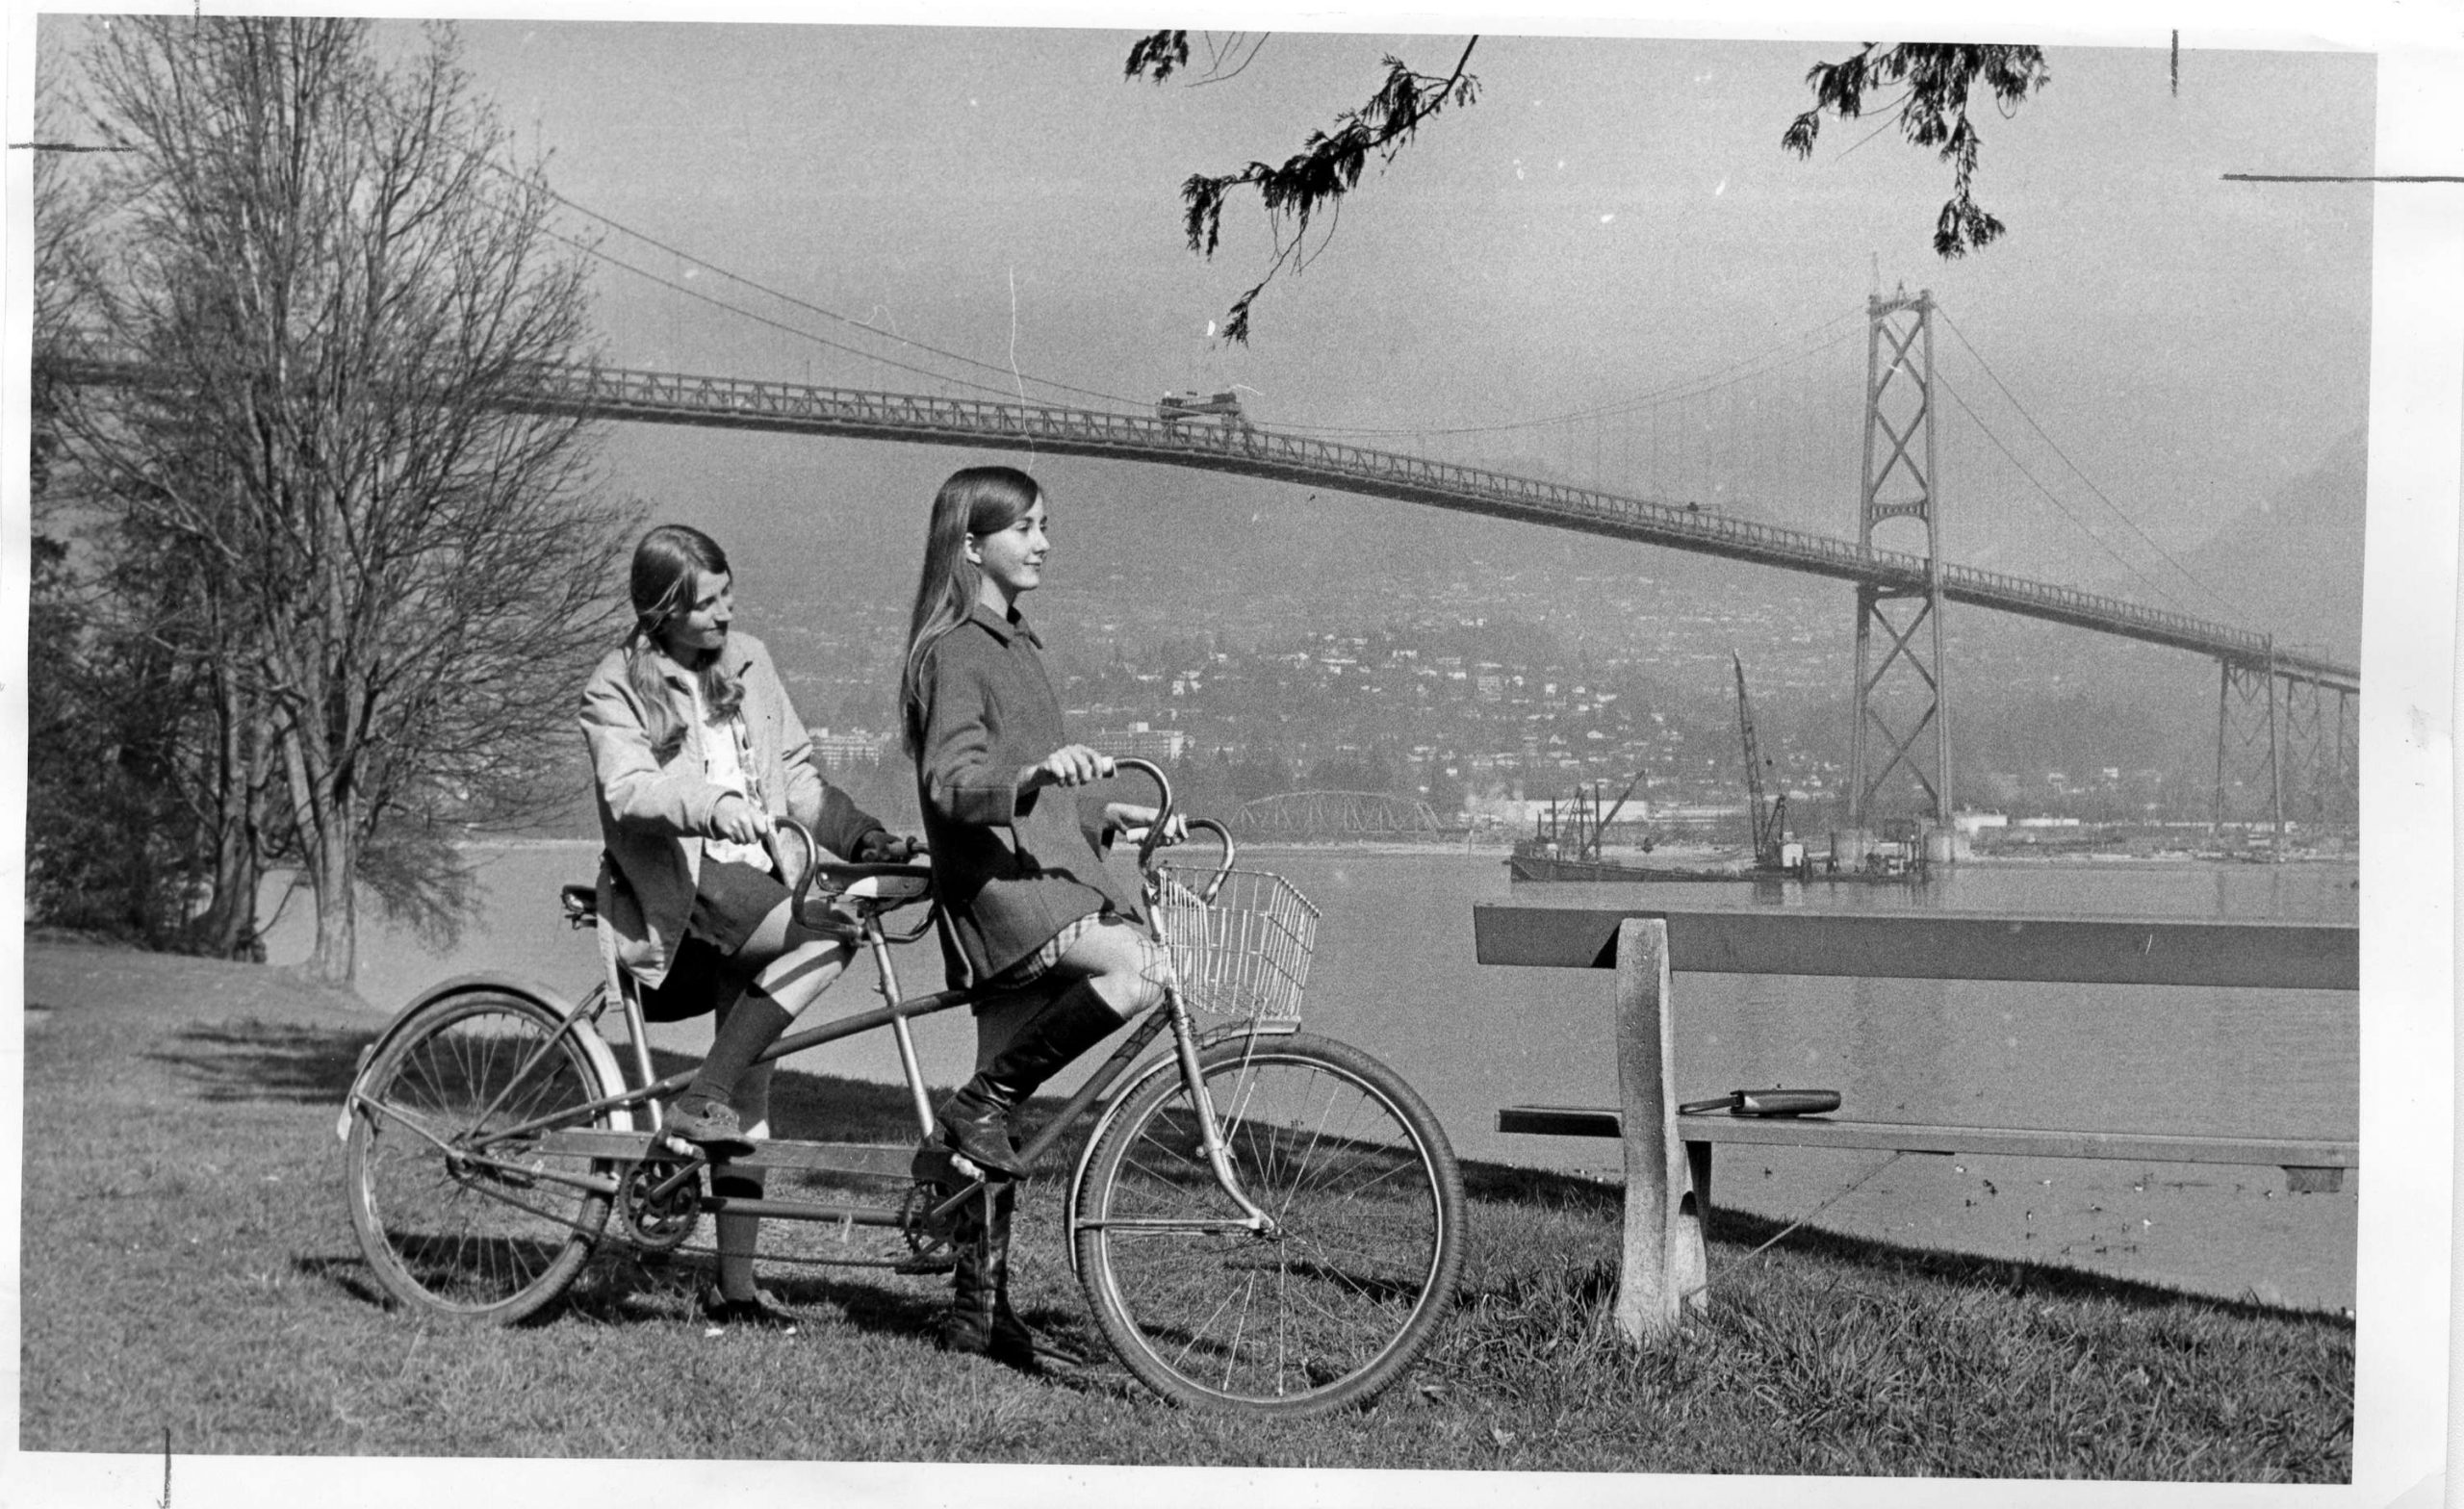 Pausing on a tandem bicycle in Stanley Park. Reference code: AM1667-: CVA 134-047